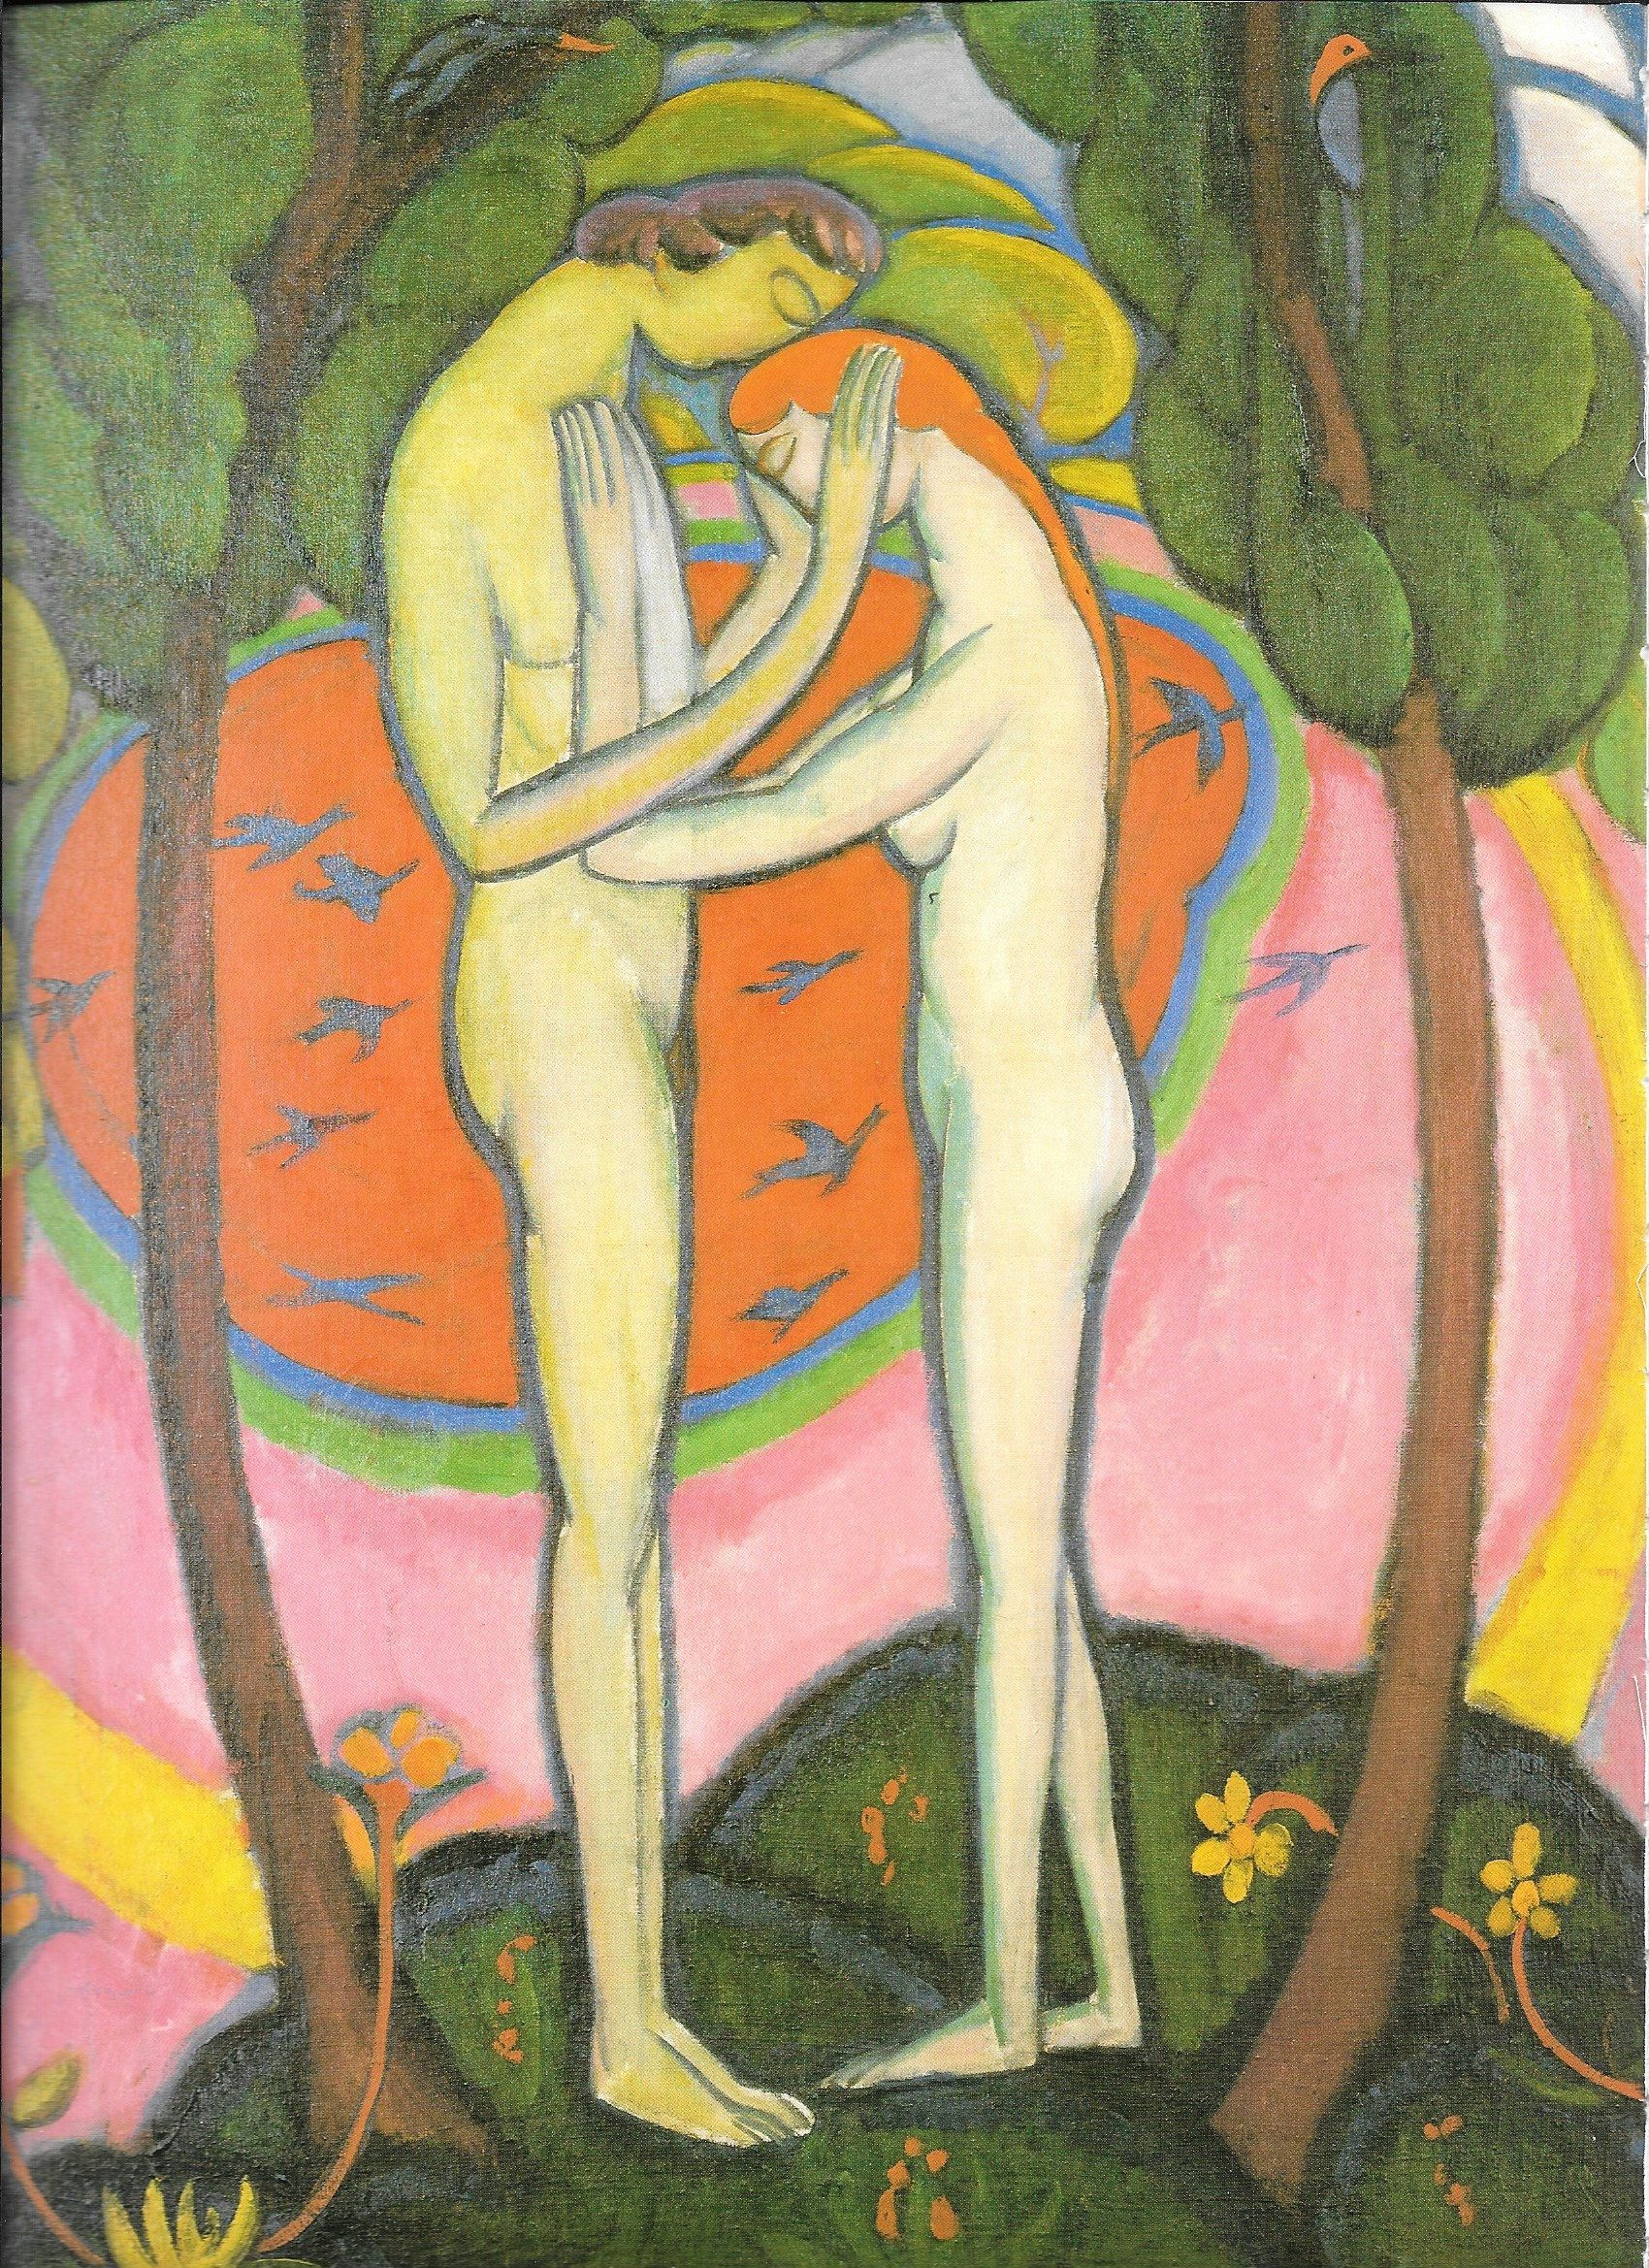 Man woman embrace nude art